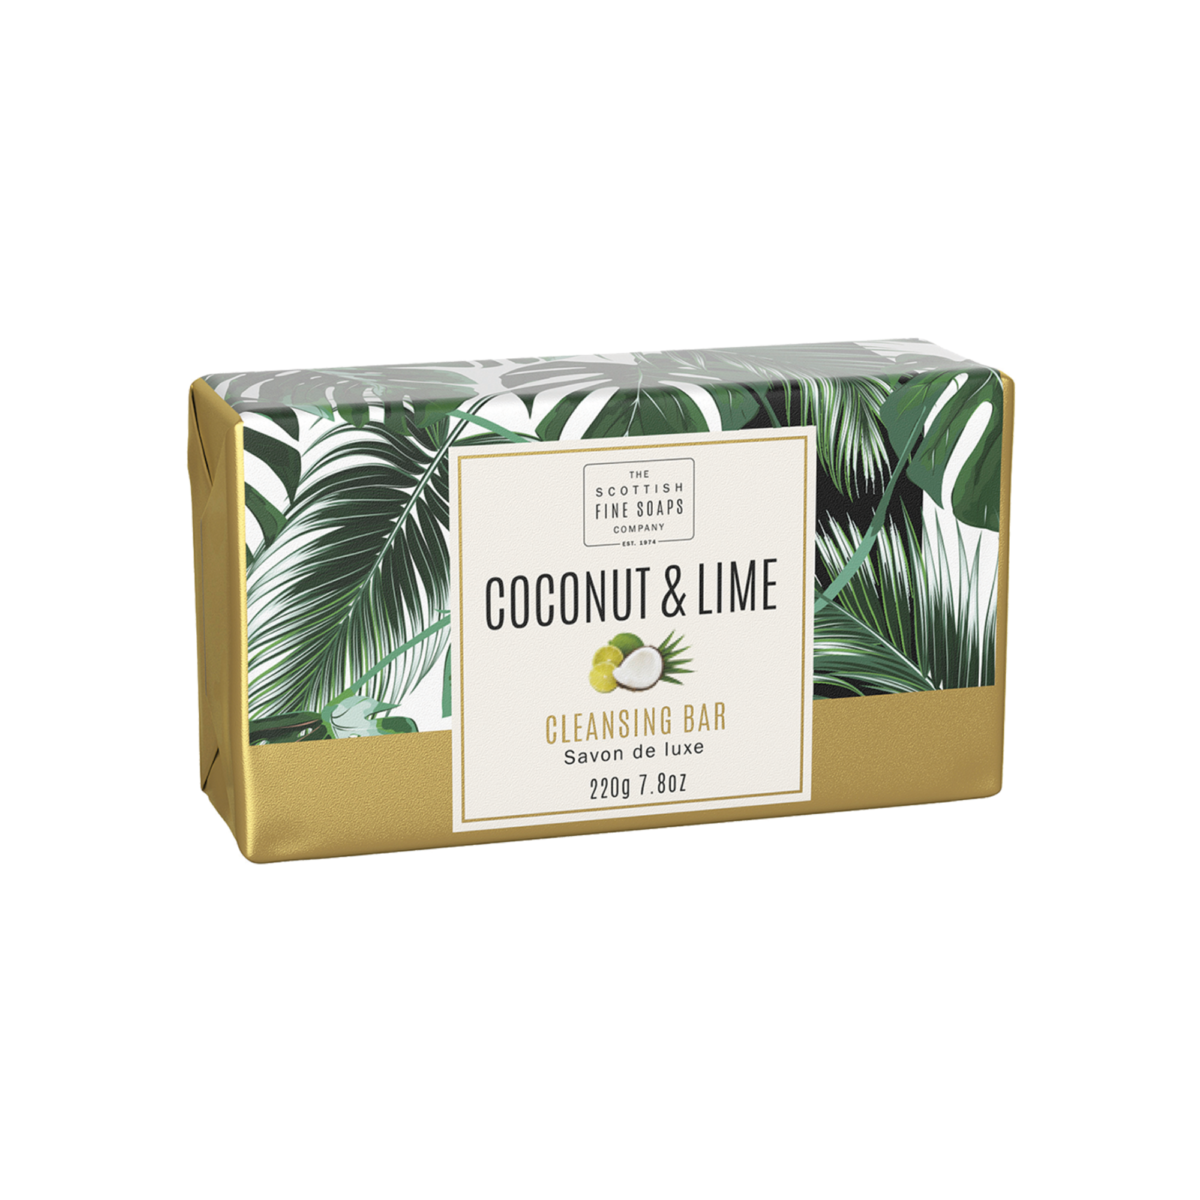 Coconut & Lime Cleansing Bar